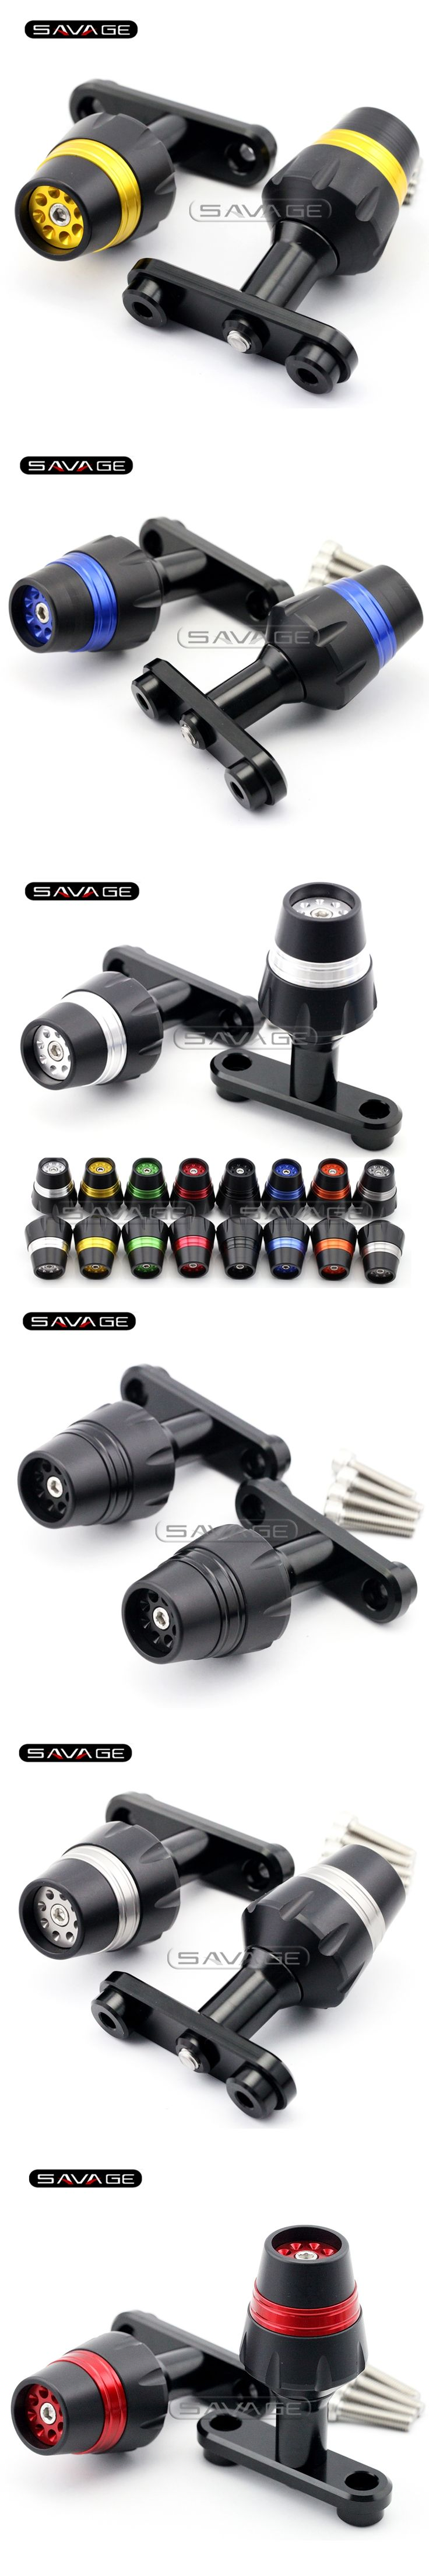 For Bajaj Pulsar 200 NS 2012-2014 Motorcycle Accessories Frame Sliders Crash Protector Falling Protection New 8 colors